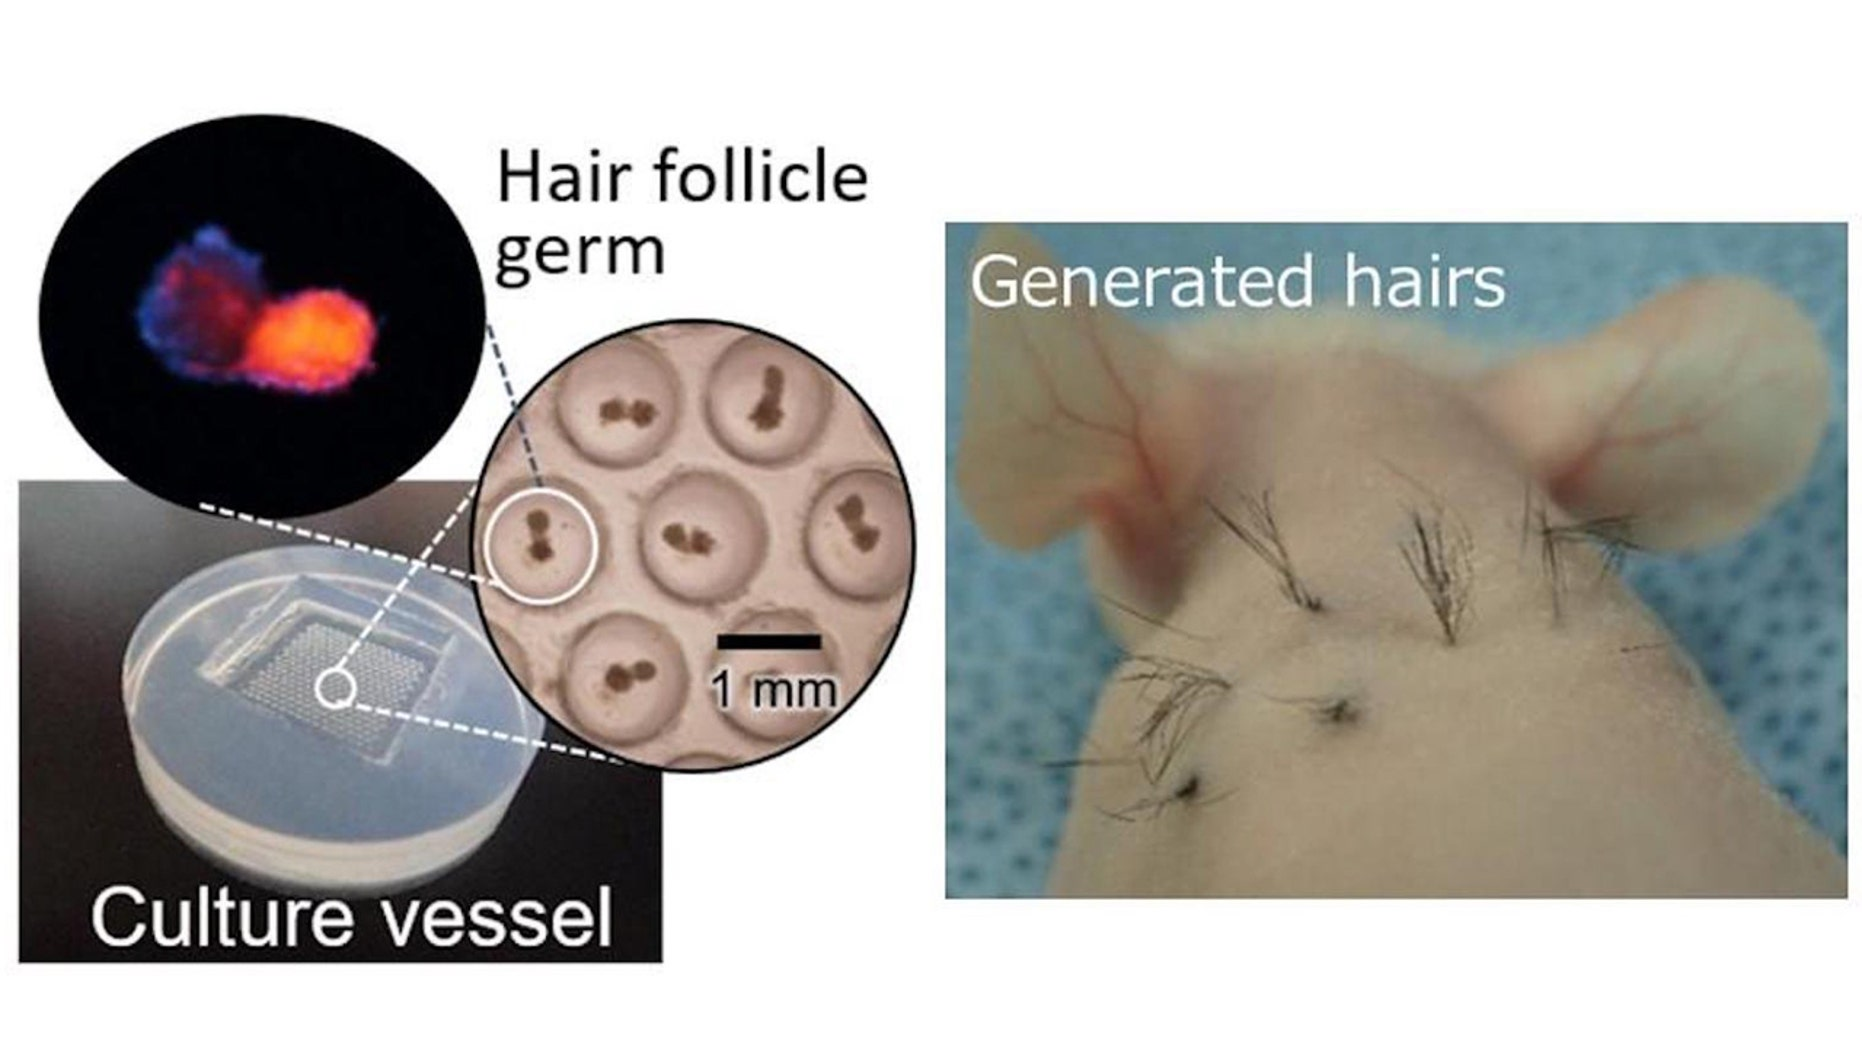 A team of scientists have discovered the use of a chemical found in McDonald's french fries can help grow hair follicles.